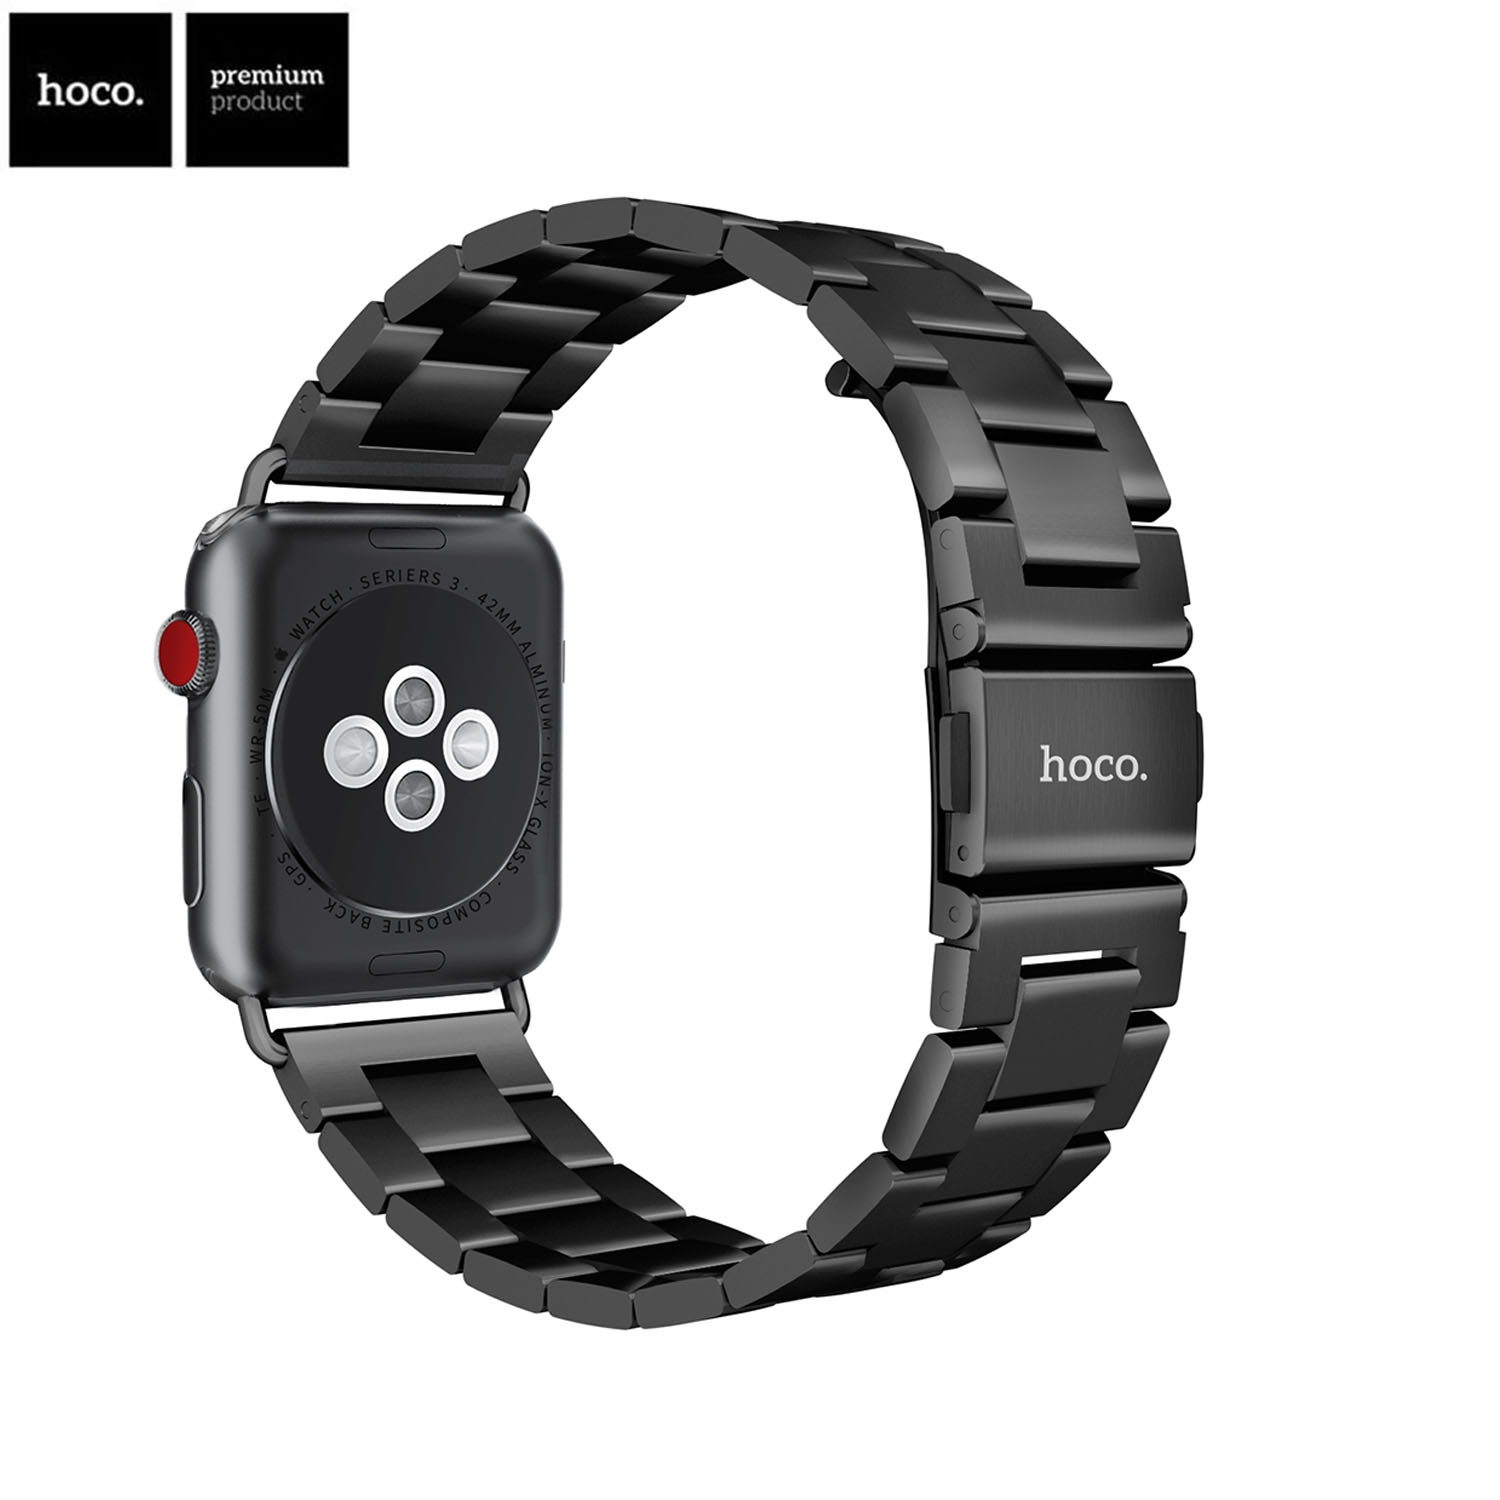 HOCO Brand Stainless Steel Strap for Apple Watch Band 42mm 38mm Replacement Belt Series 3 Series 2 Series 1 Bracelet Connector 42mm 38mm for apple watch s3 series 3